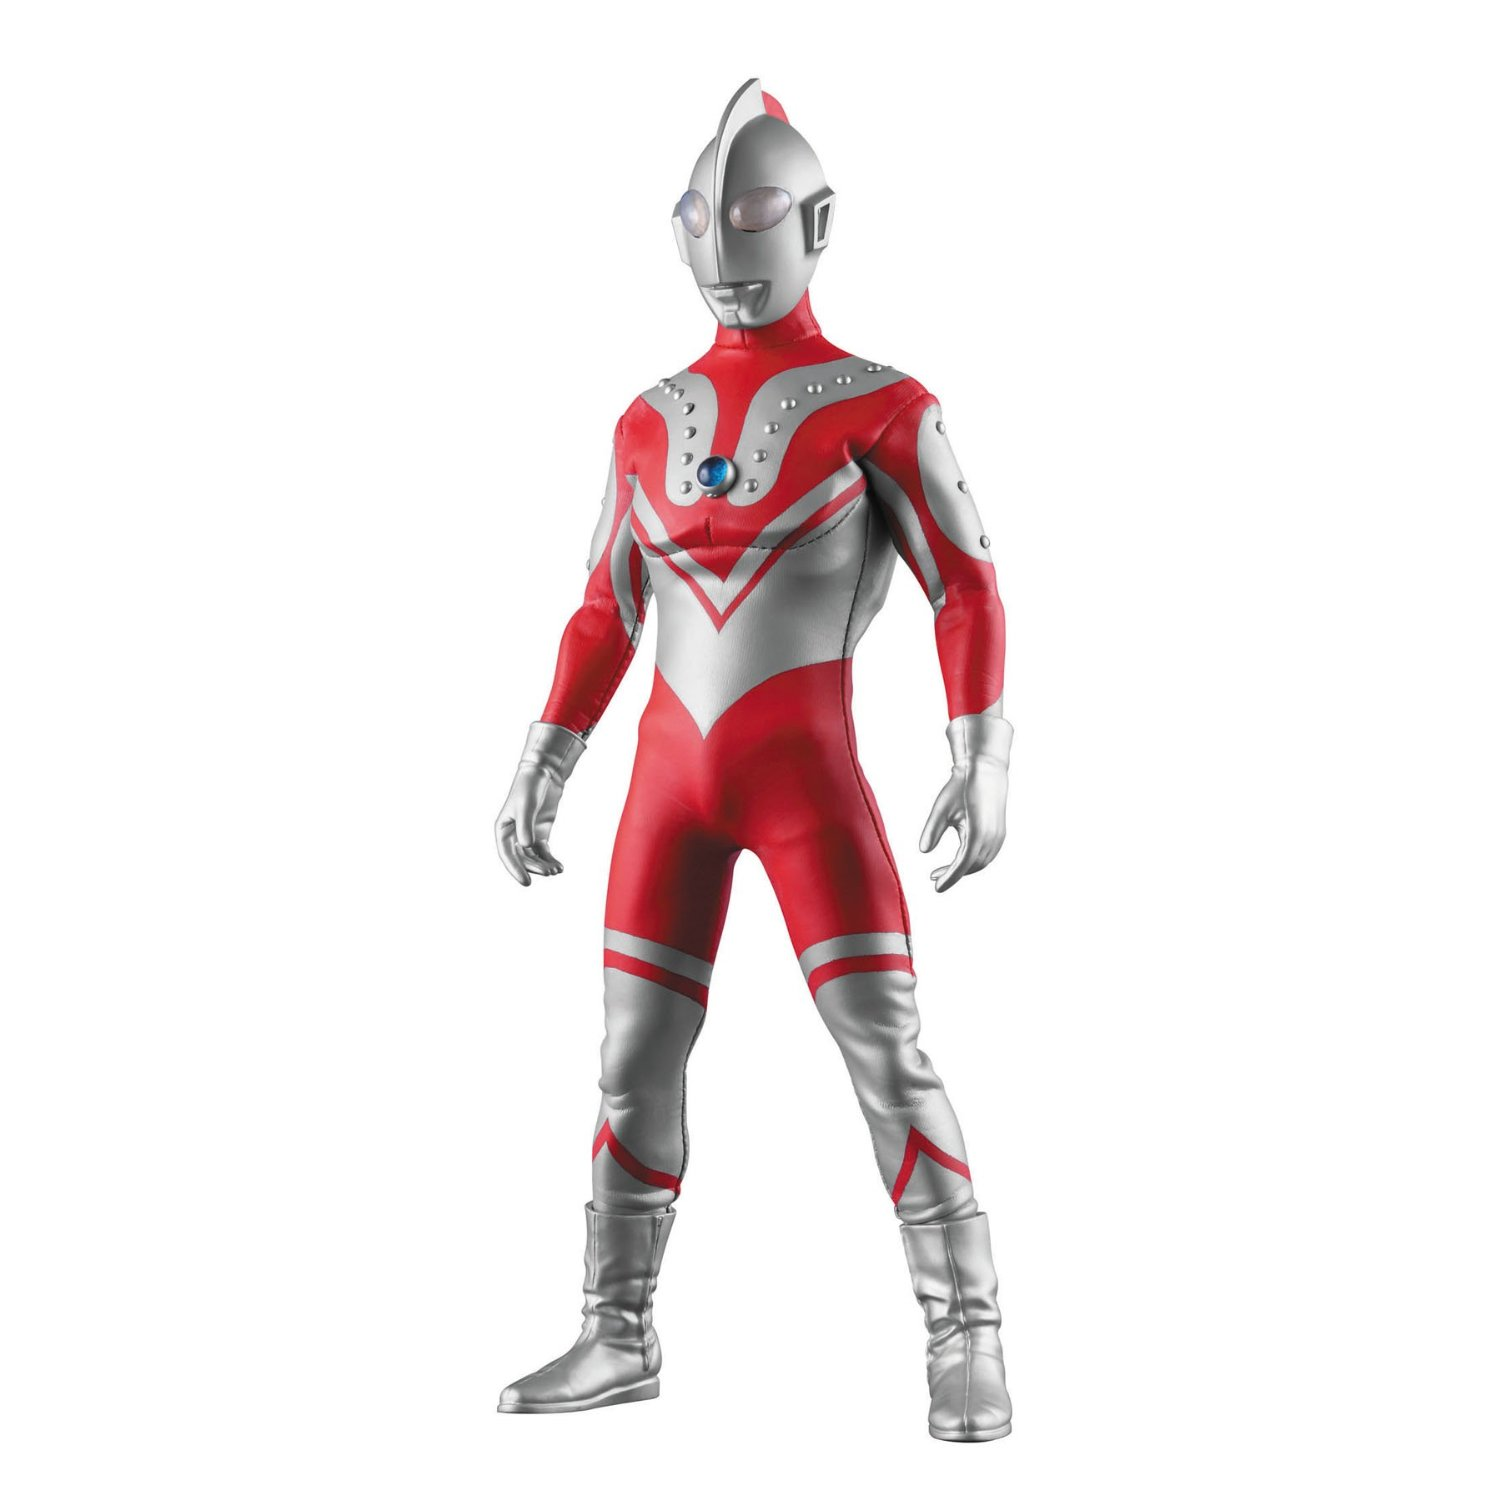 MASK: Brand new Medicom RAH Ultraman Zoffy MISB Ultraman Zoffy